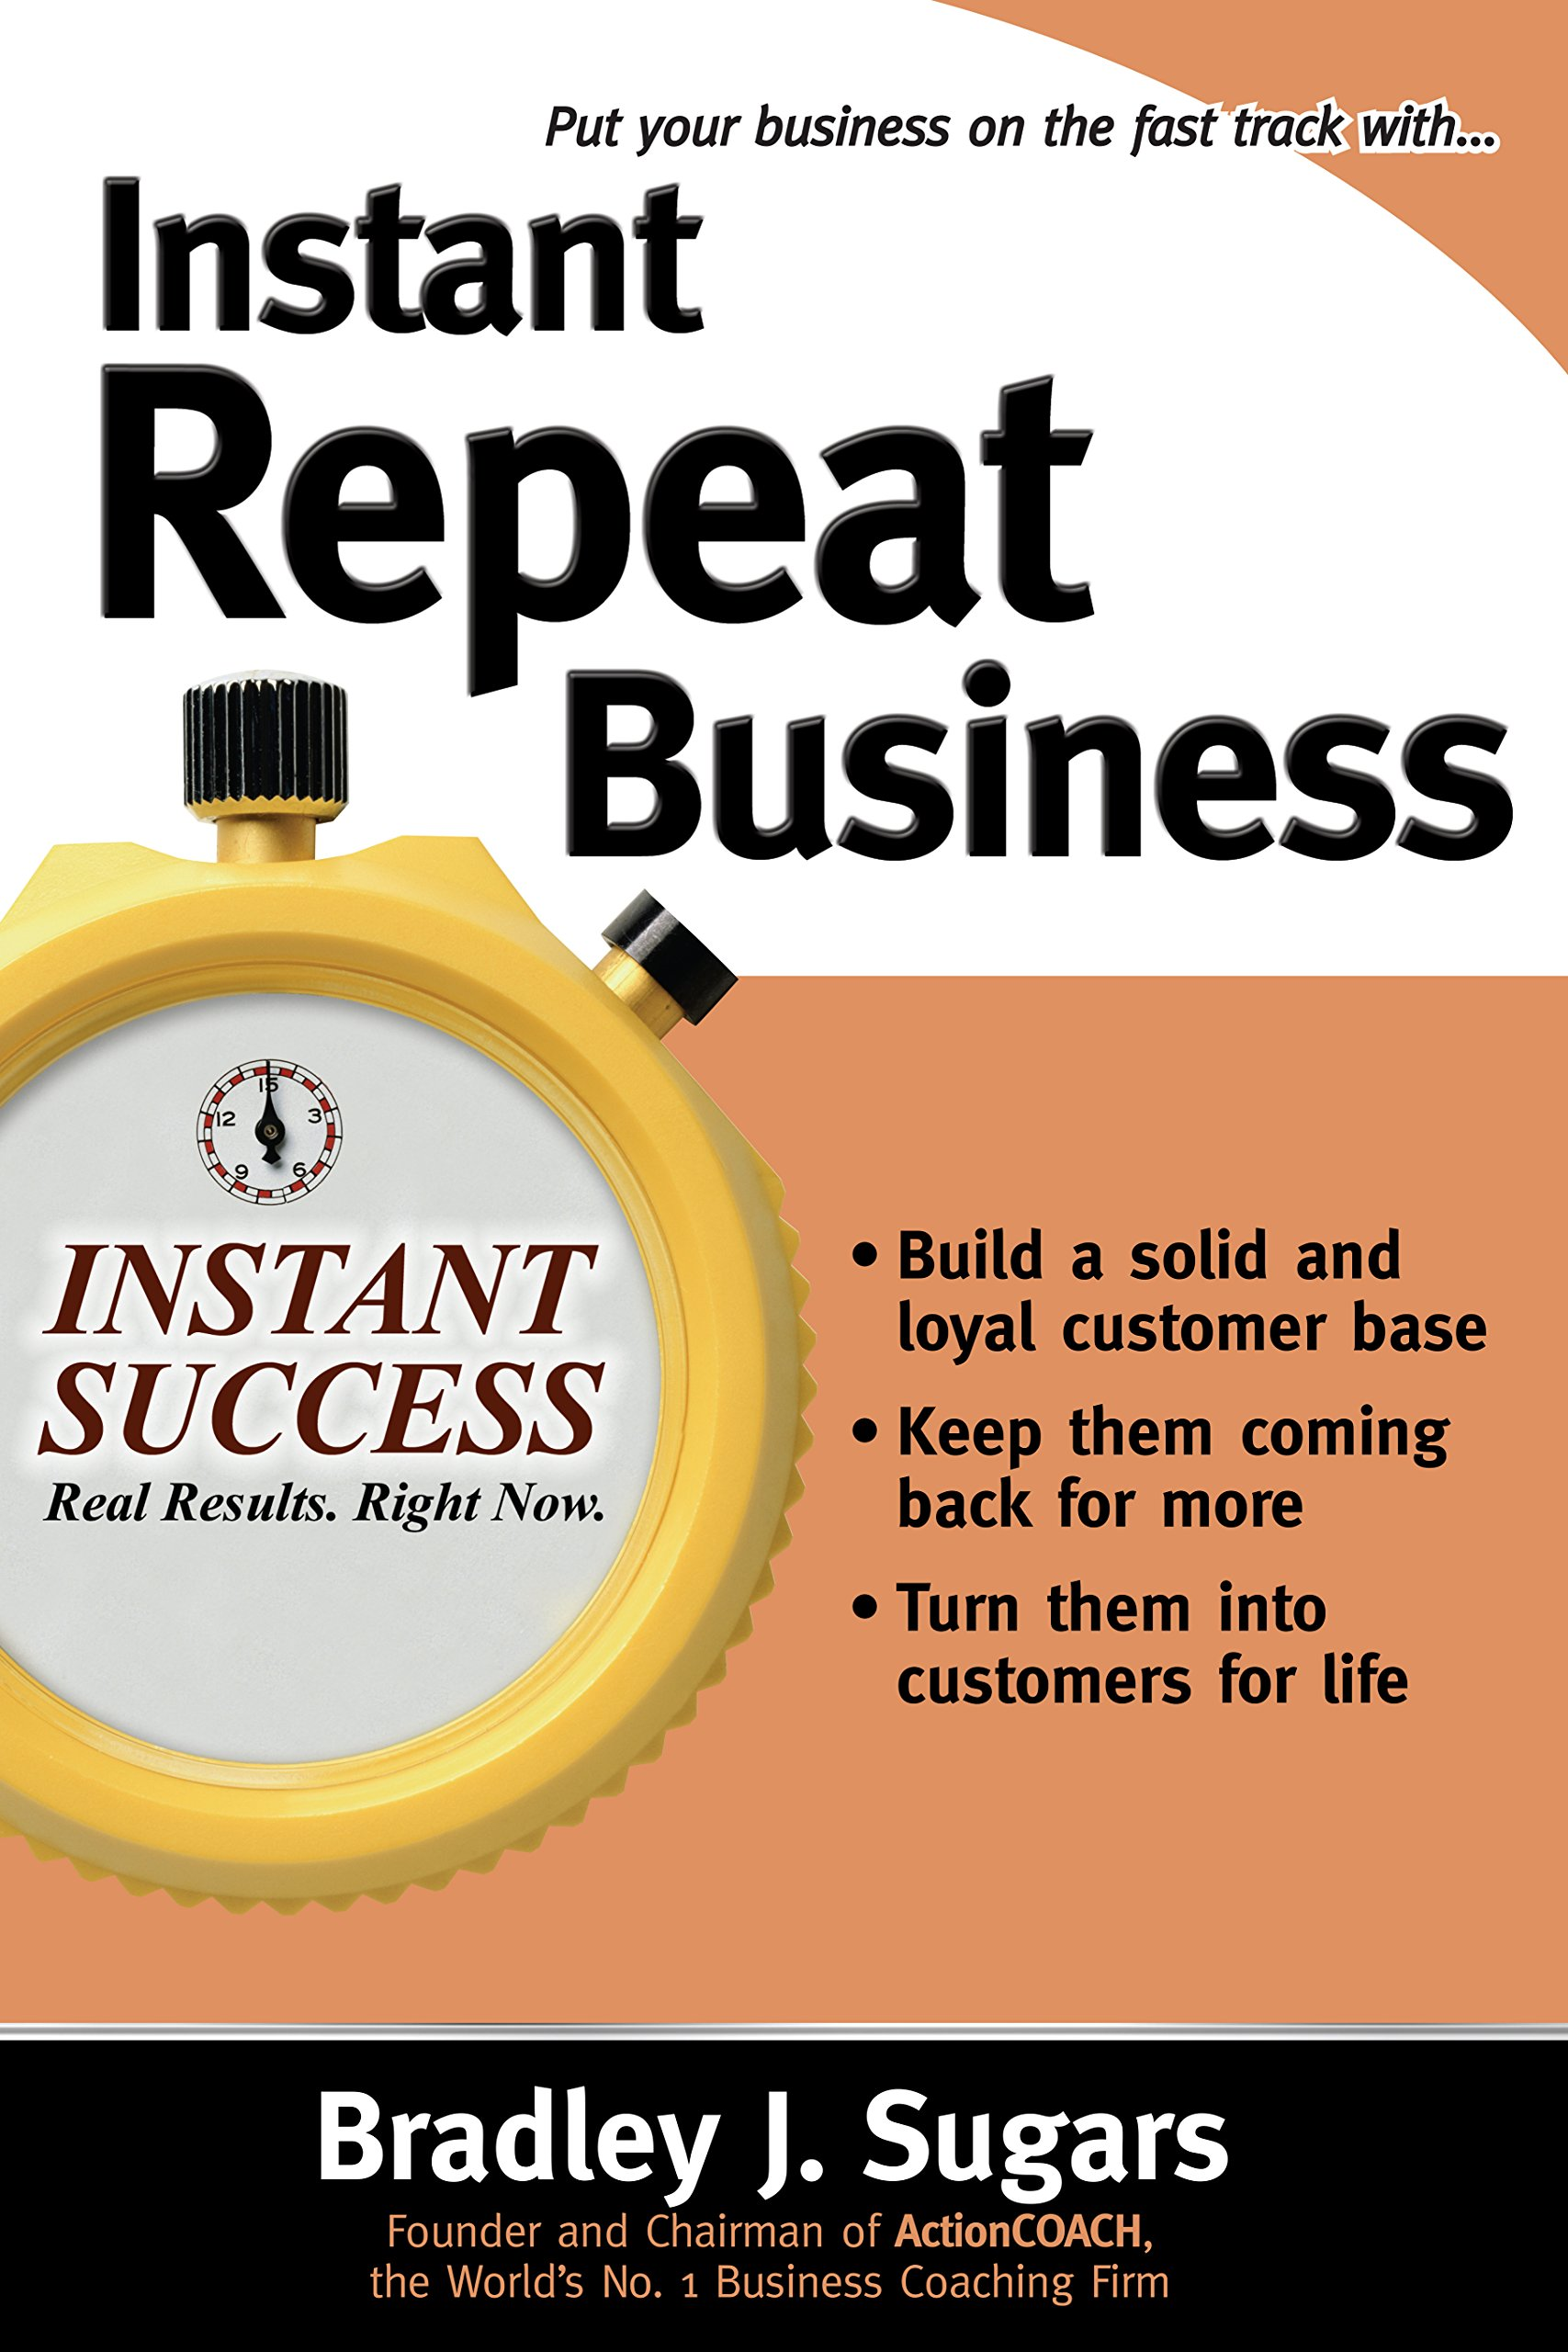 Instant Repeat Business: Loyalty Strategies That Keep Customers Coming Back (Instant Success Series)